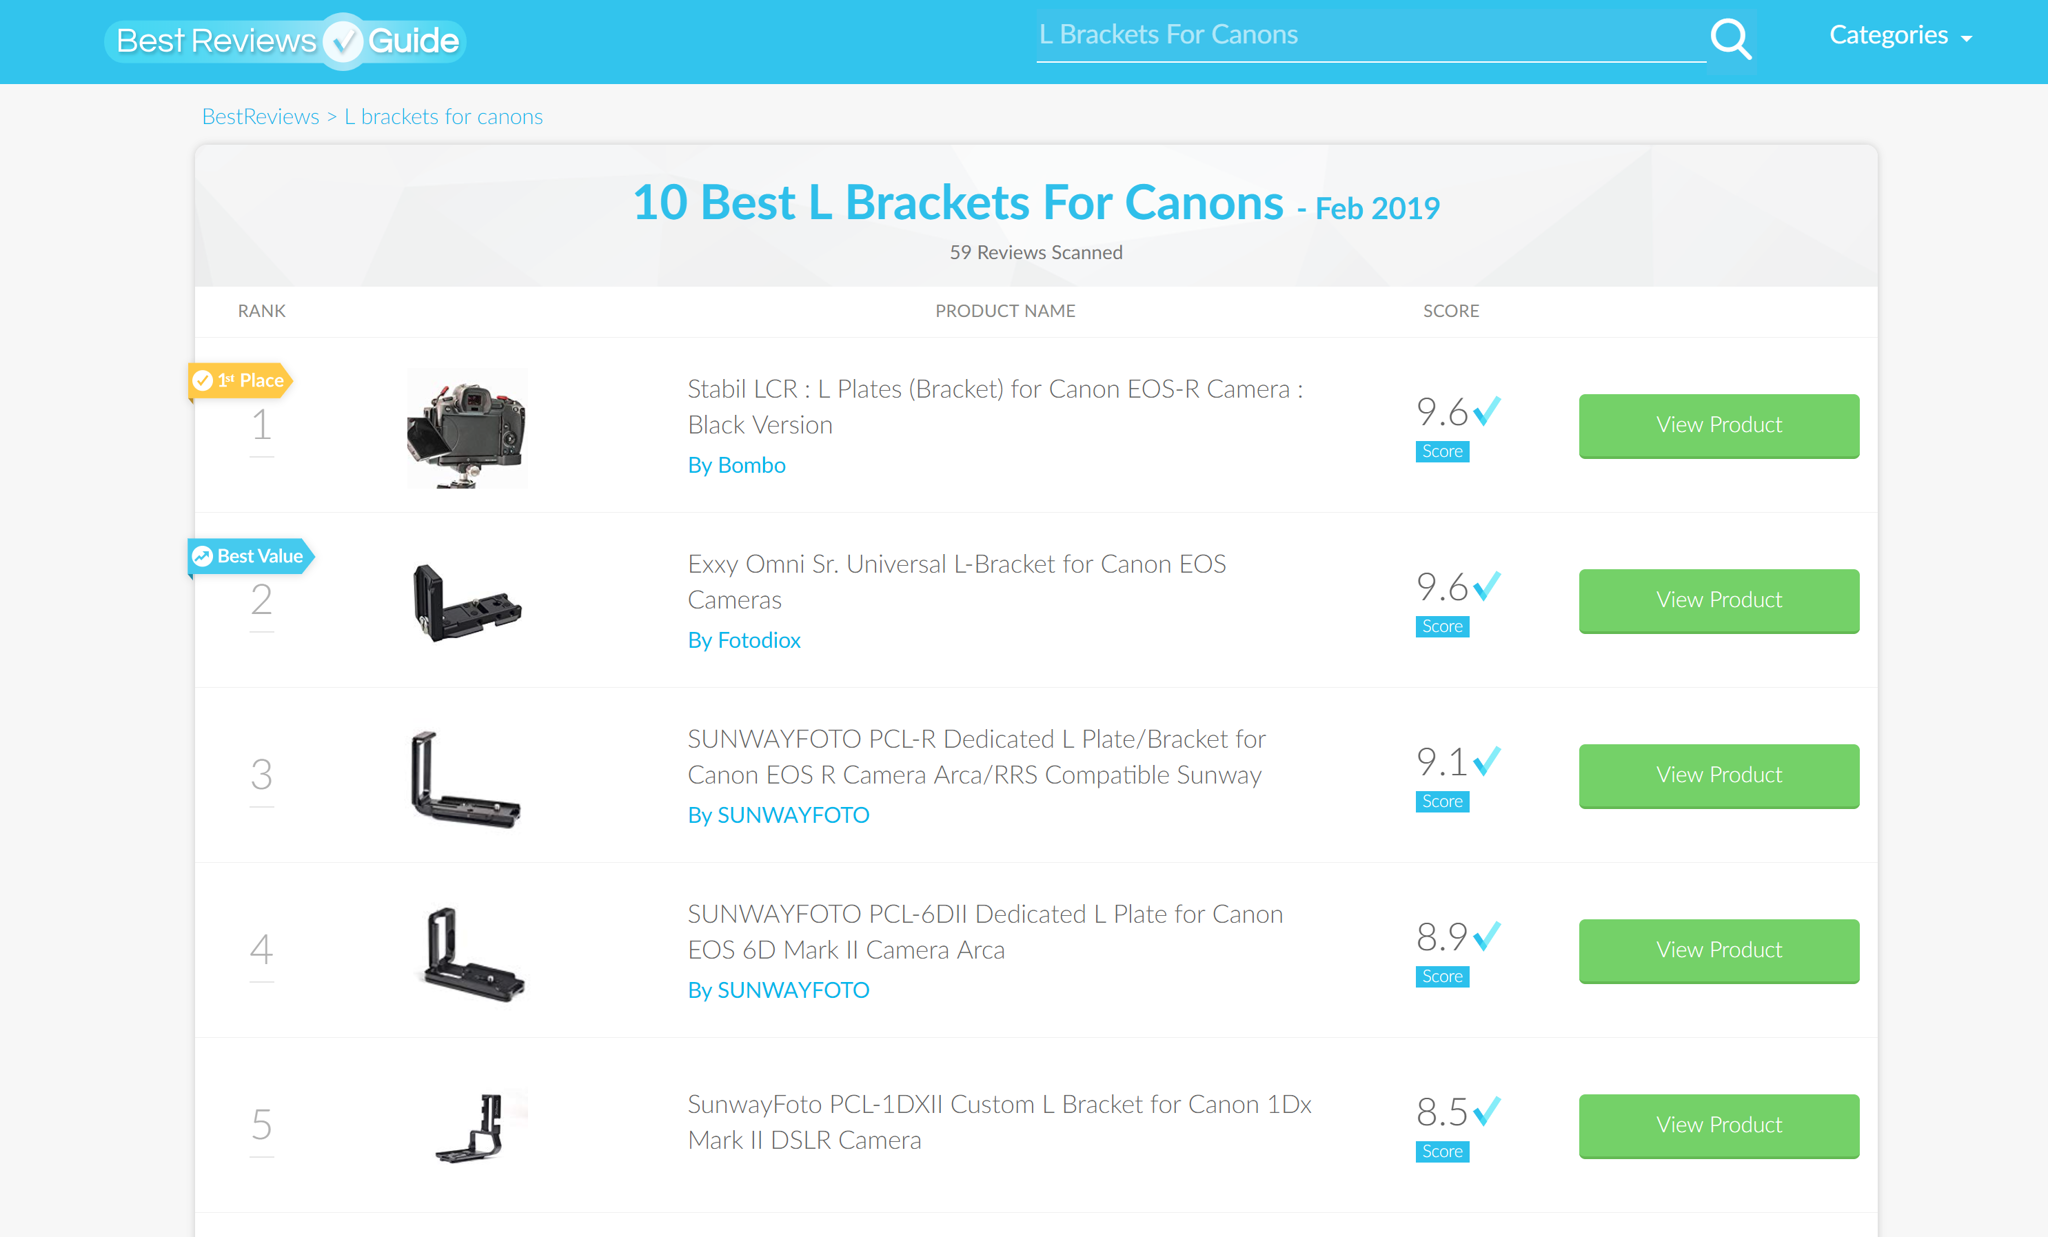 Stabil LCR : Best of top 10 best L Plates (Bracket) for Canon EOS-R